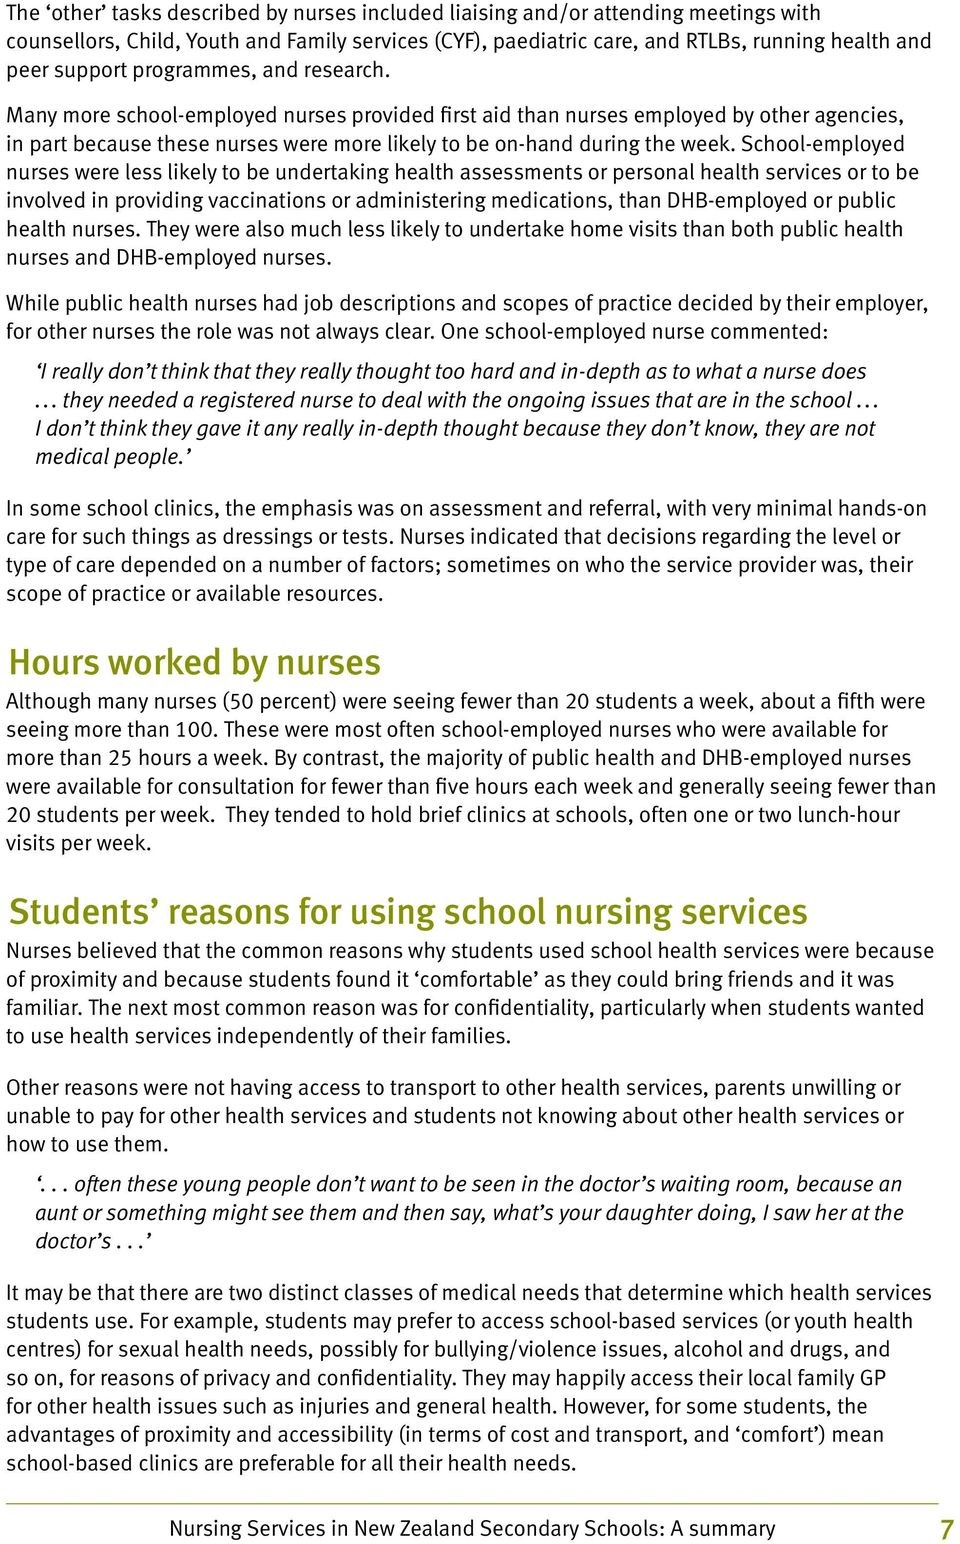 School-employed nurses were less likely to be undertaking health assessments or personal health services or to be involved in providing vaccinations or administering medications, than DHB-employed or